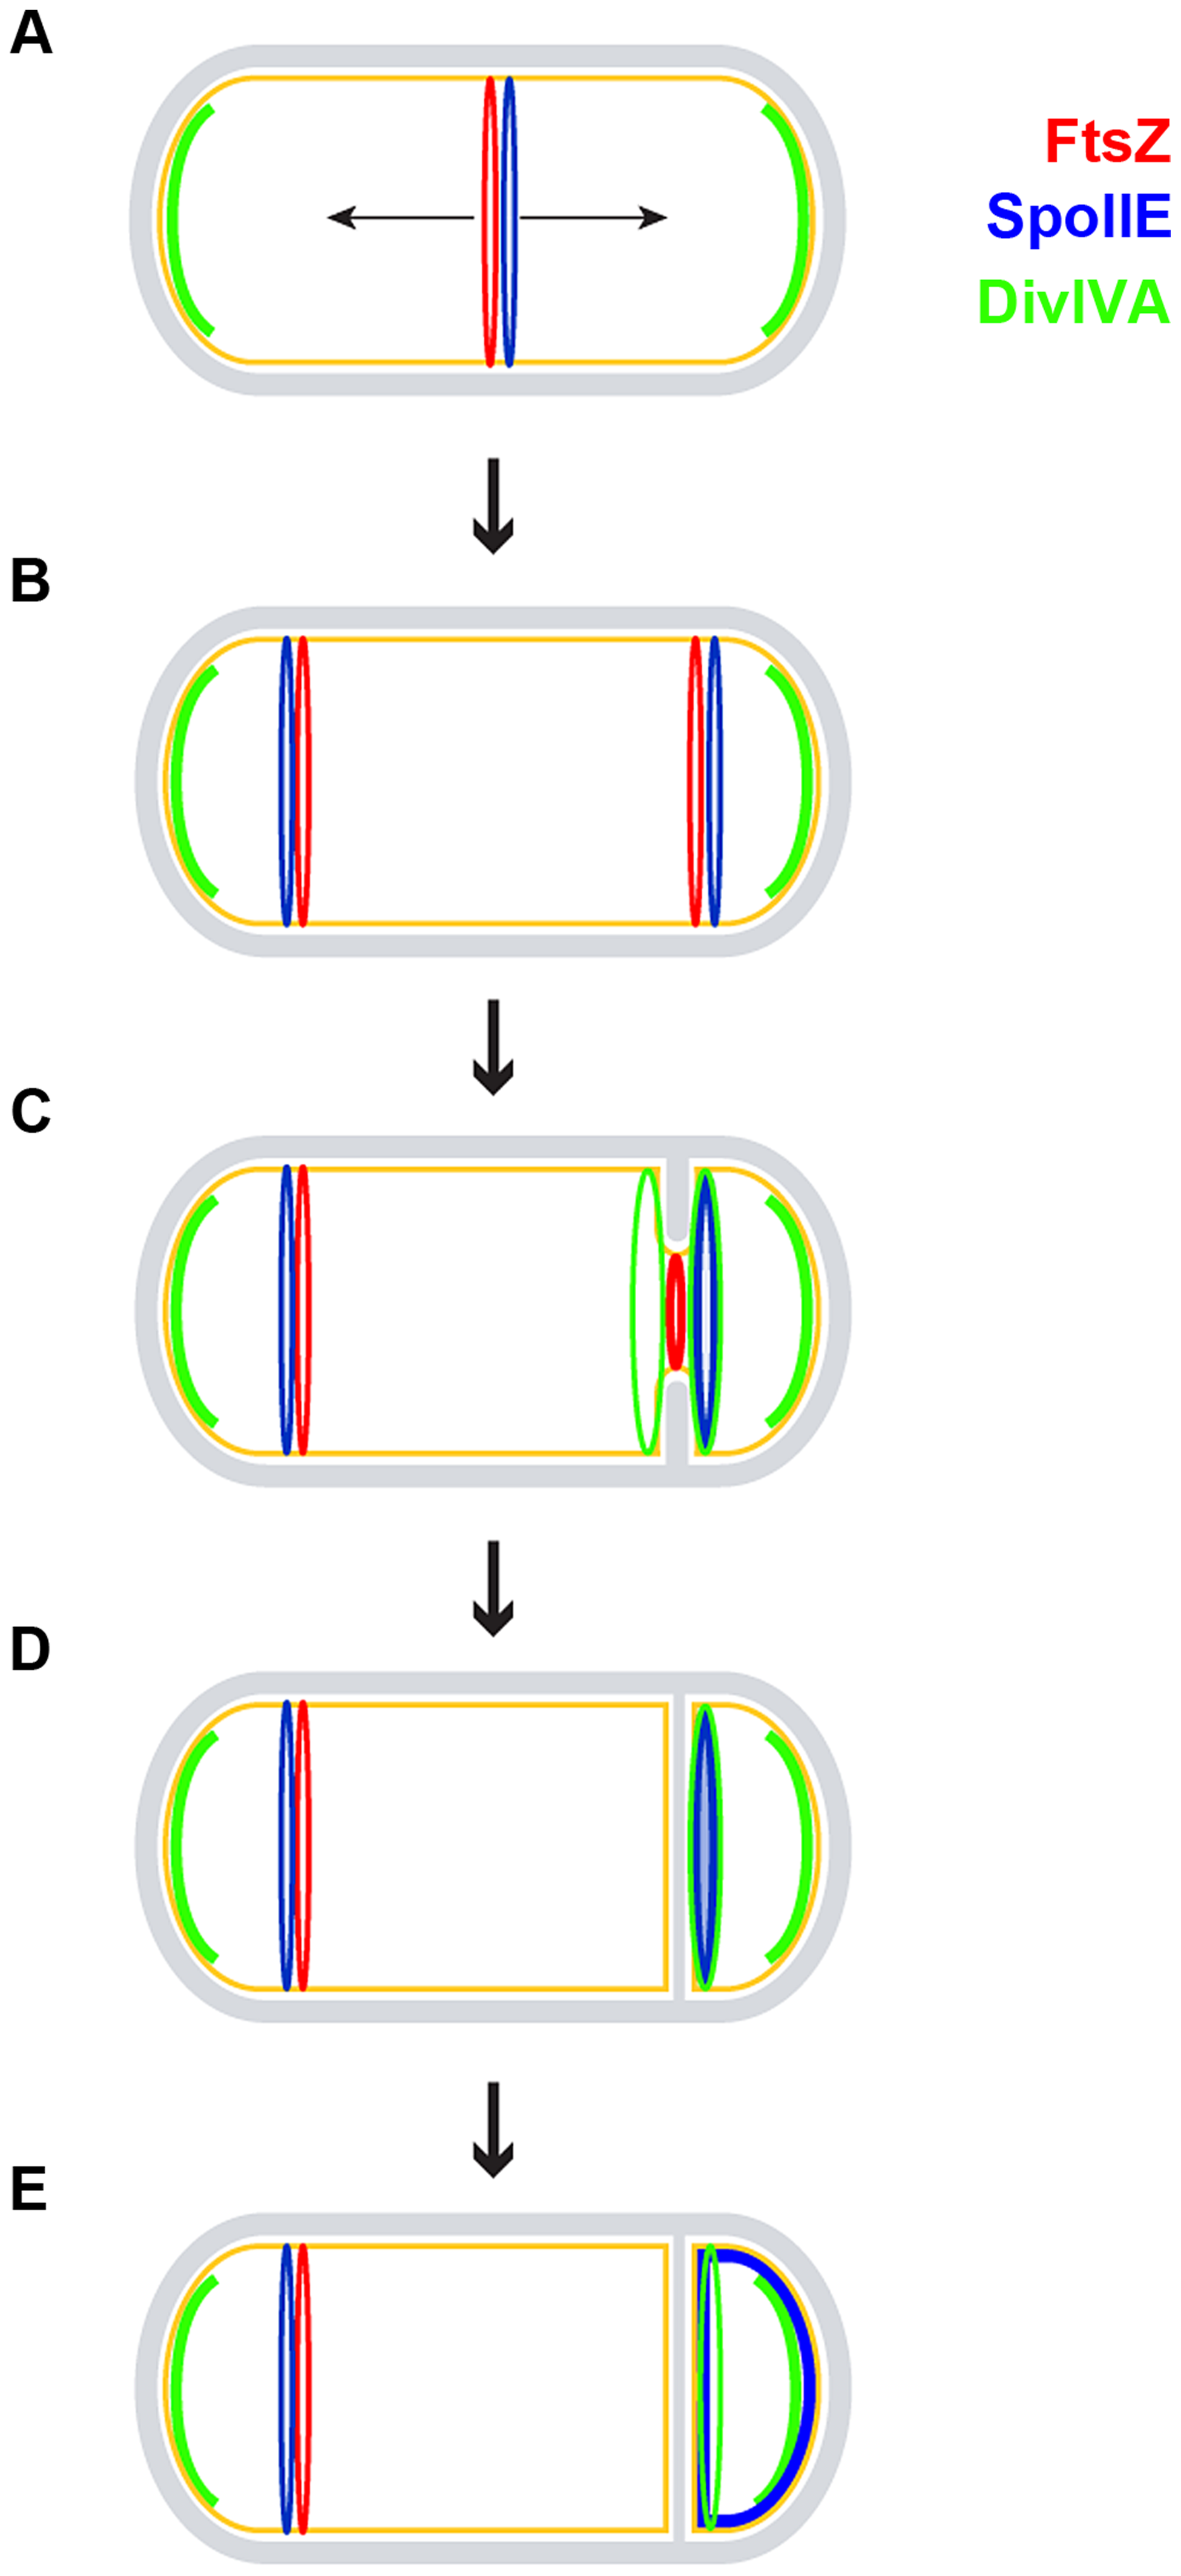 Model for the role of DivIVA during sporulation.